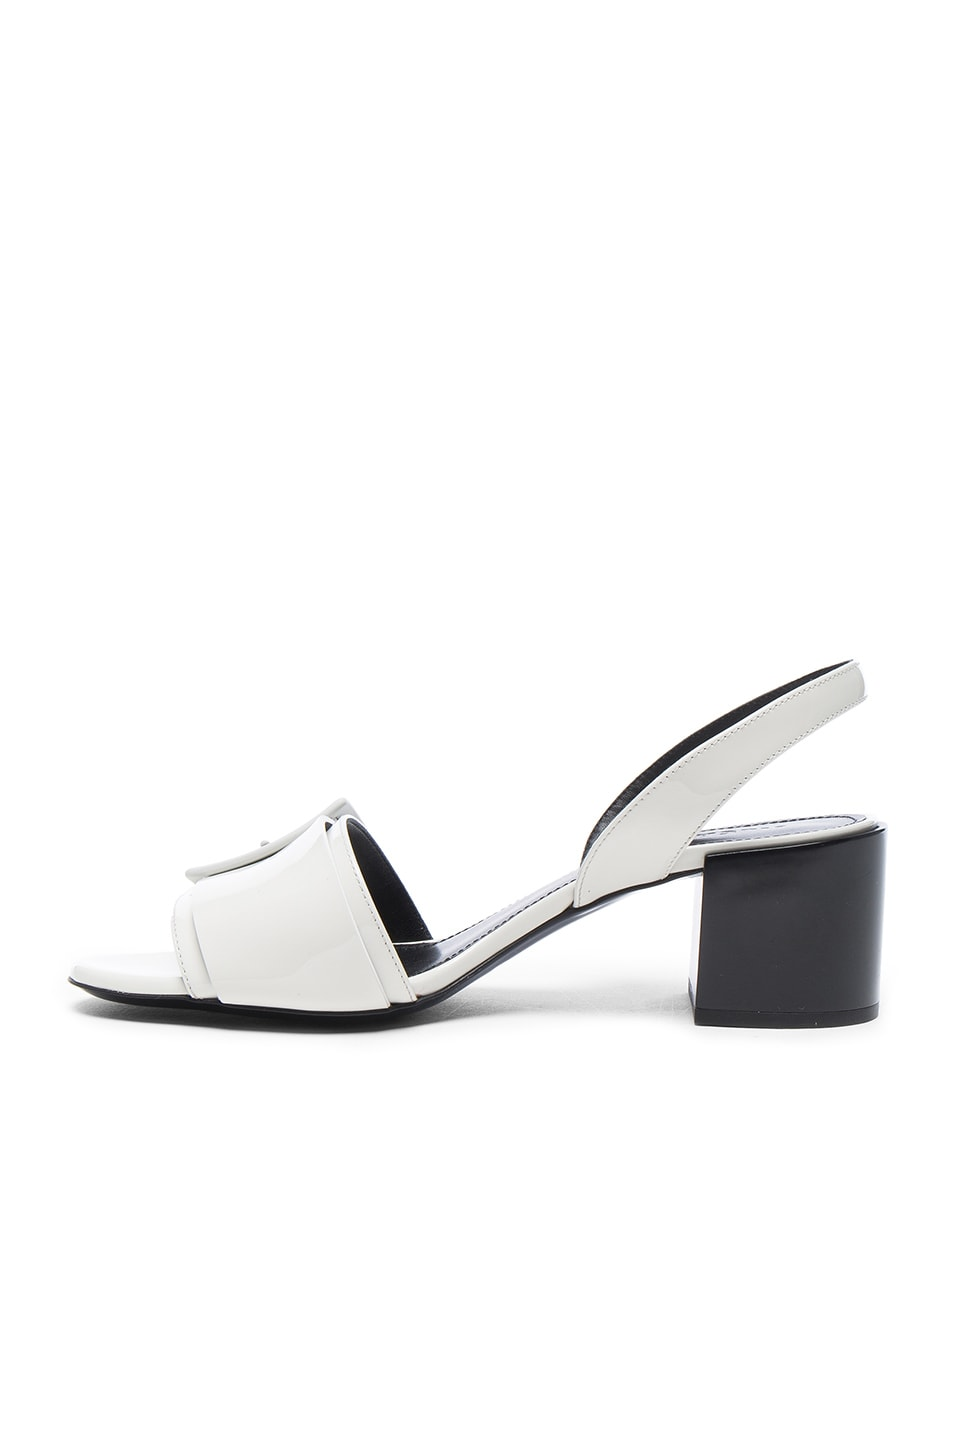 Image 5 of Jil Sander Patent Leather Heels in Riso & Nero